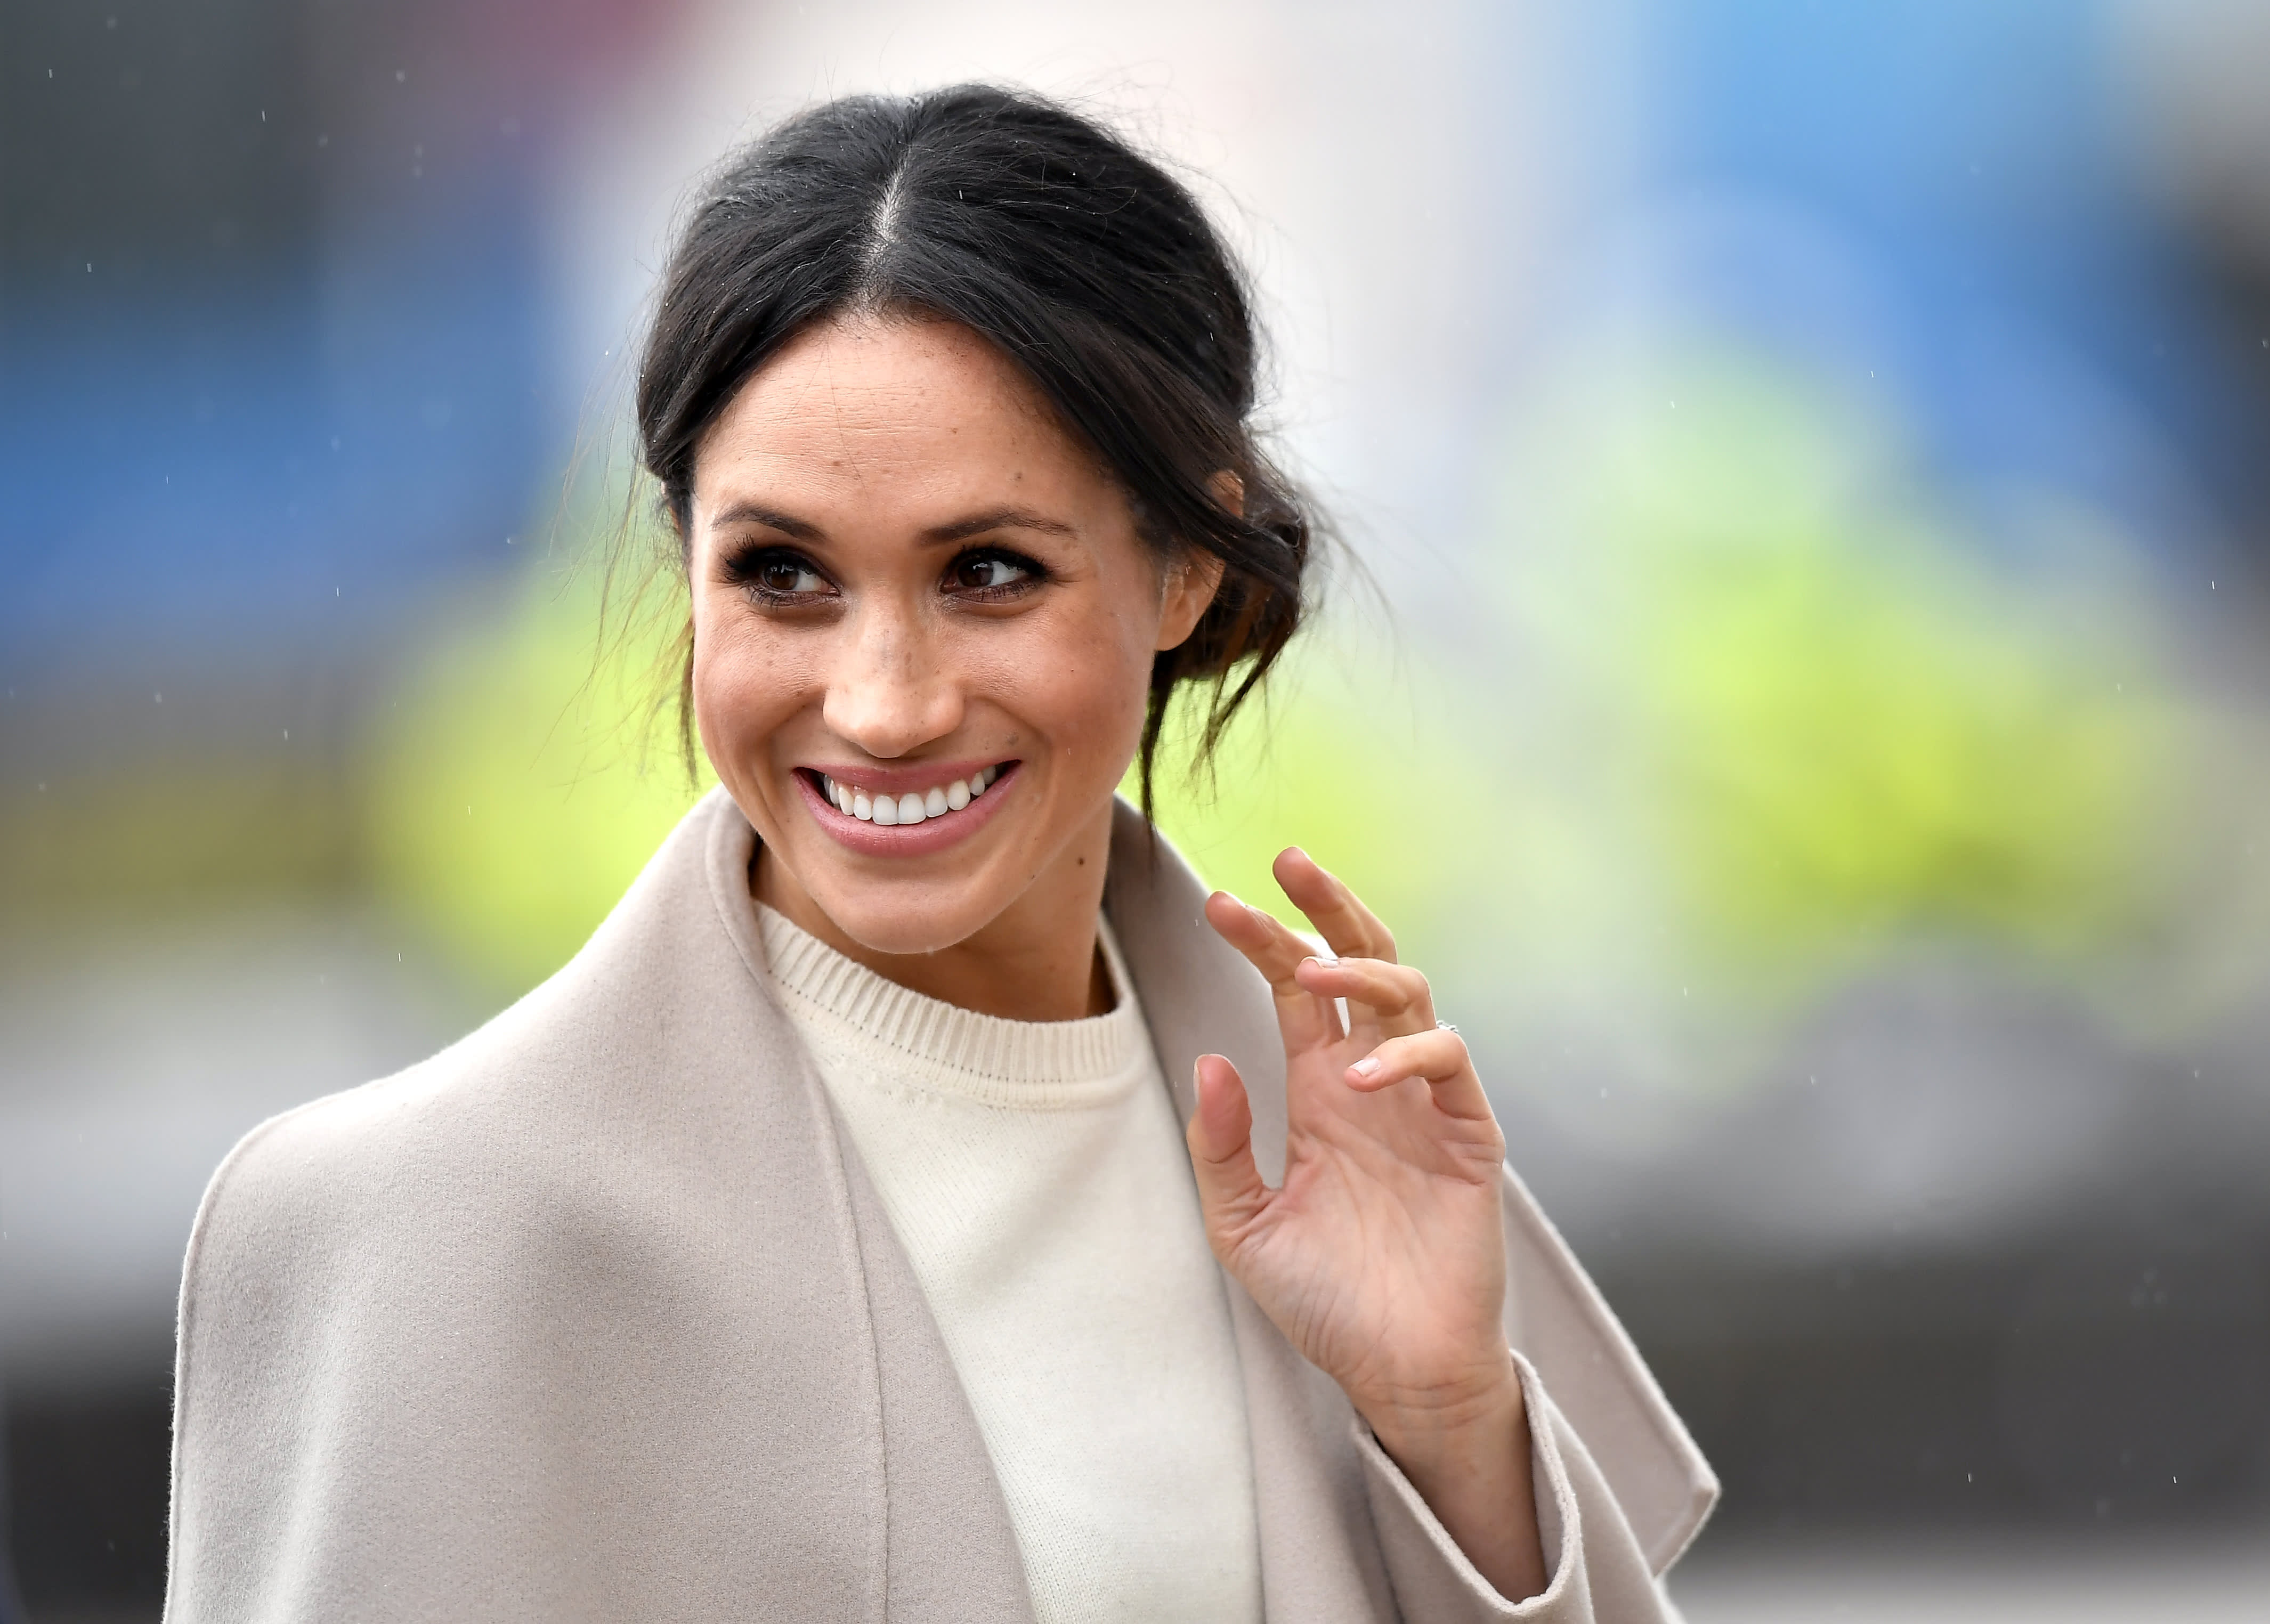 These 15 women have been named an inspiration by Meghan Markle